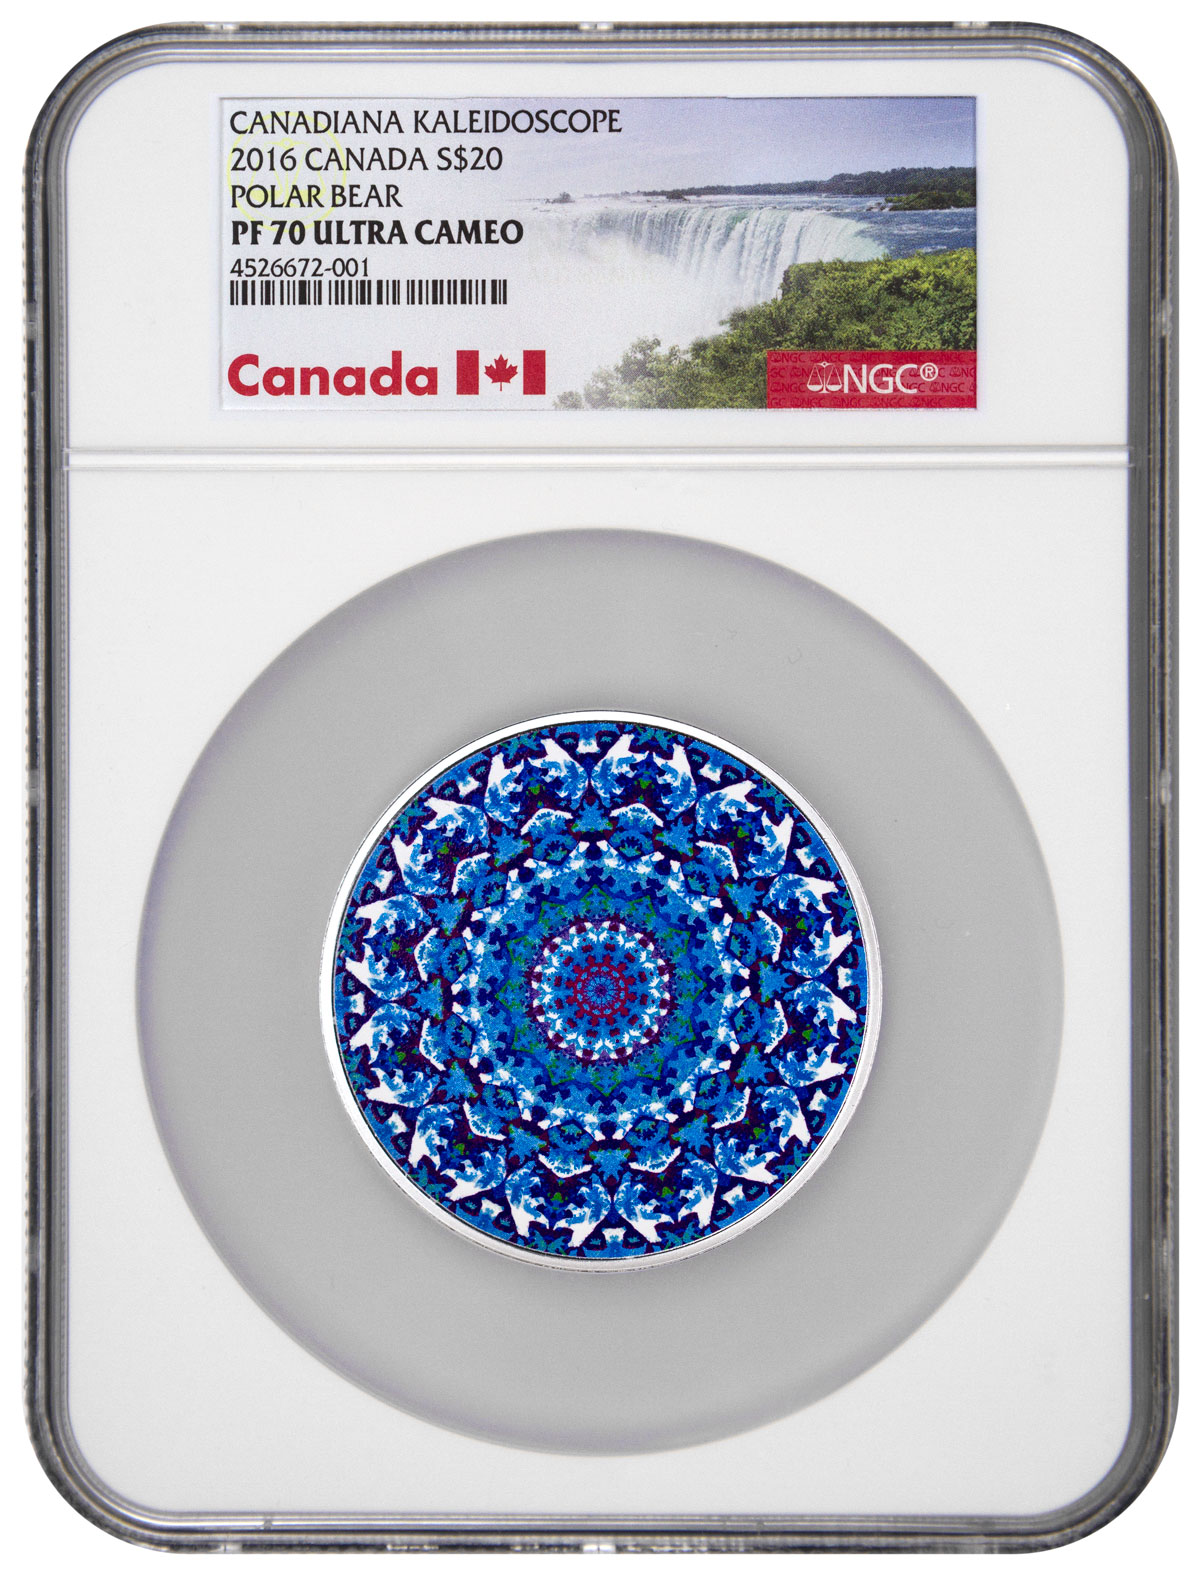 2016 Canada Canadiana Kaleidoscope - Polar Bear 1 oz Silver Colorized Proof $20 Coin NGC PF70 UC (Exclusive Canada Label)